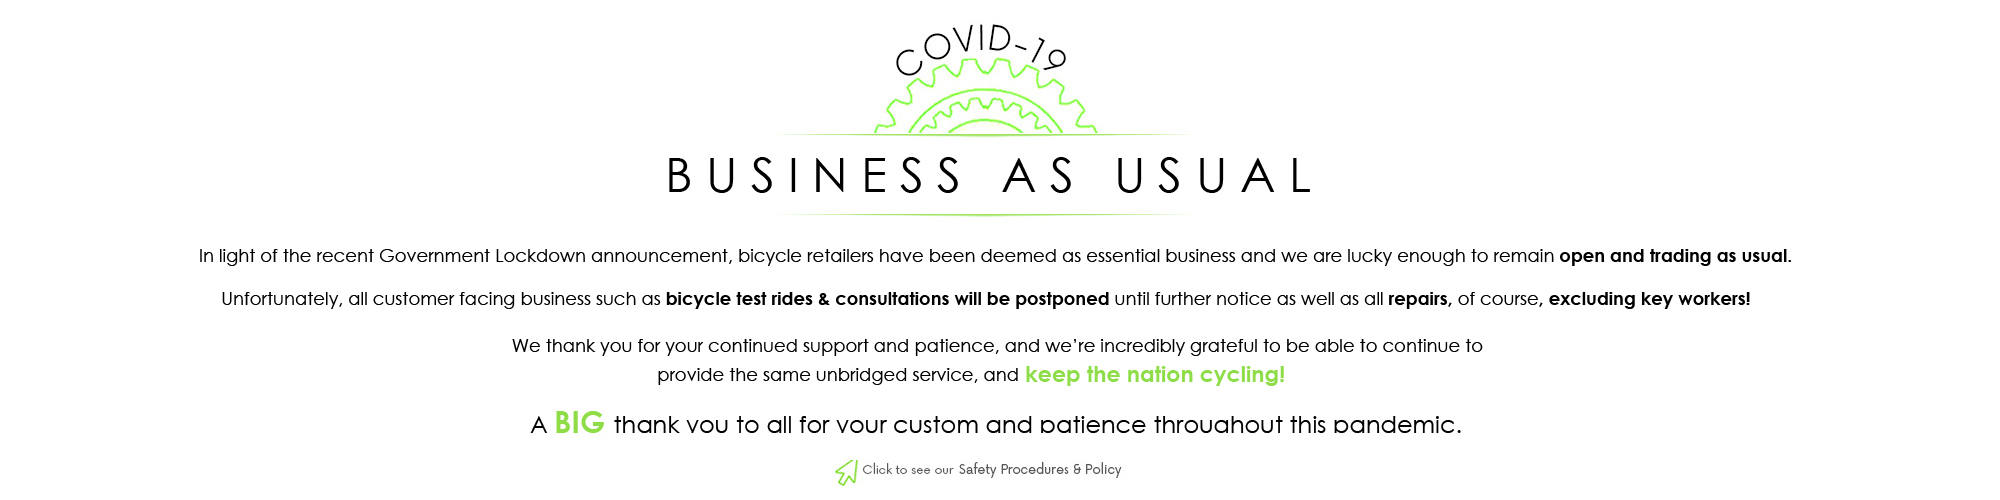 COVID-19 Policy & Poceedures at E-Bikes Direct